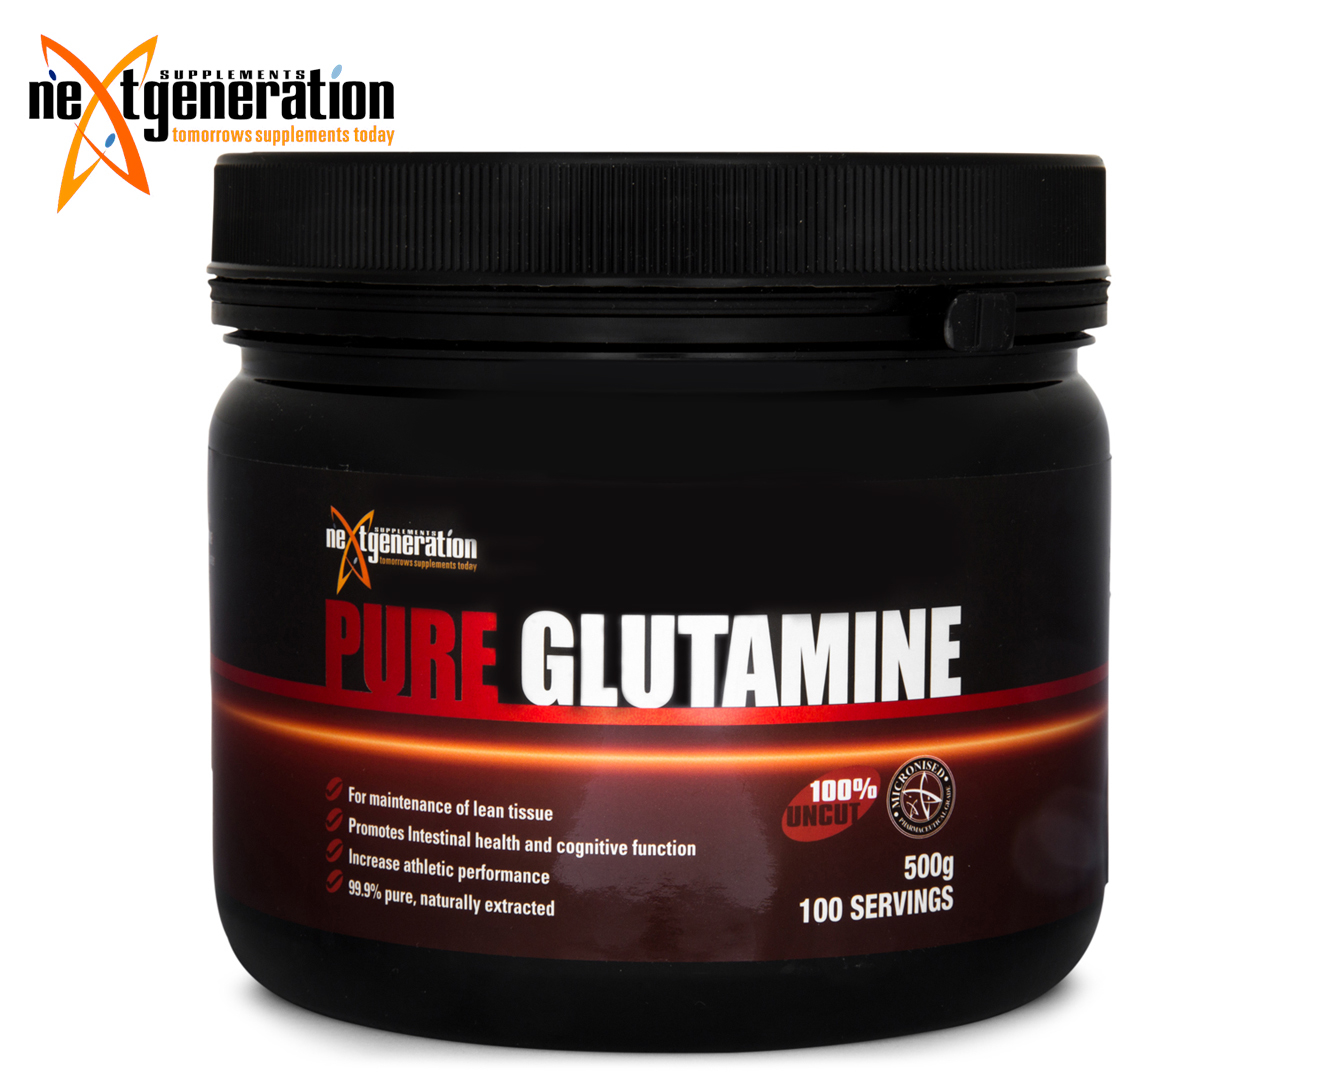 L-Glutamine Supplements and Athletic Performance